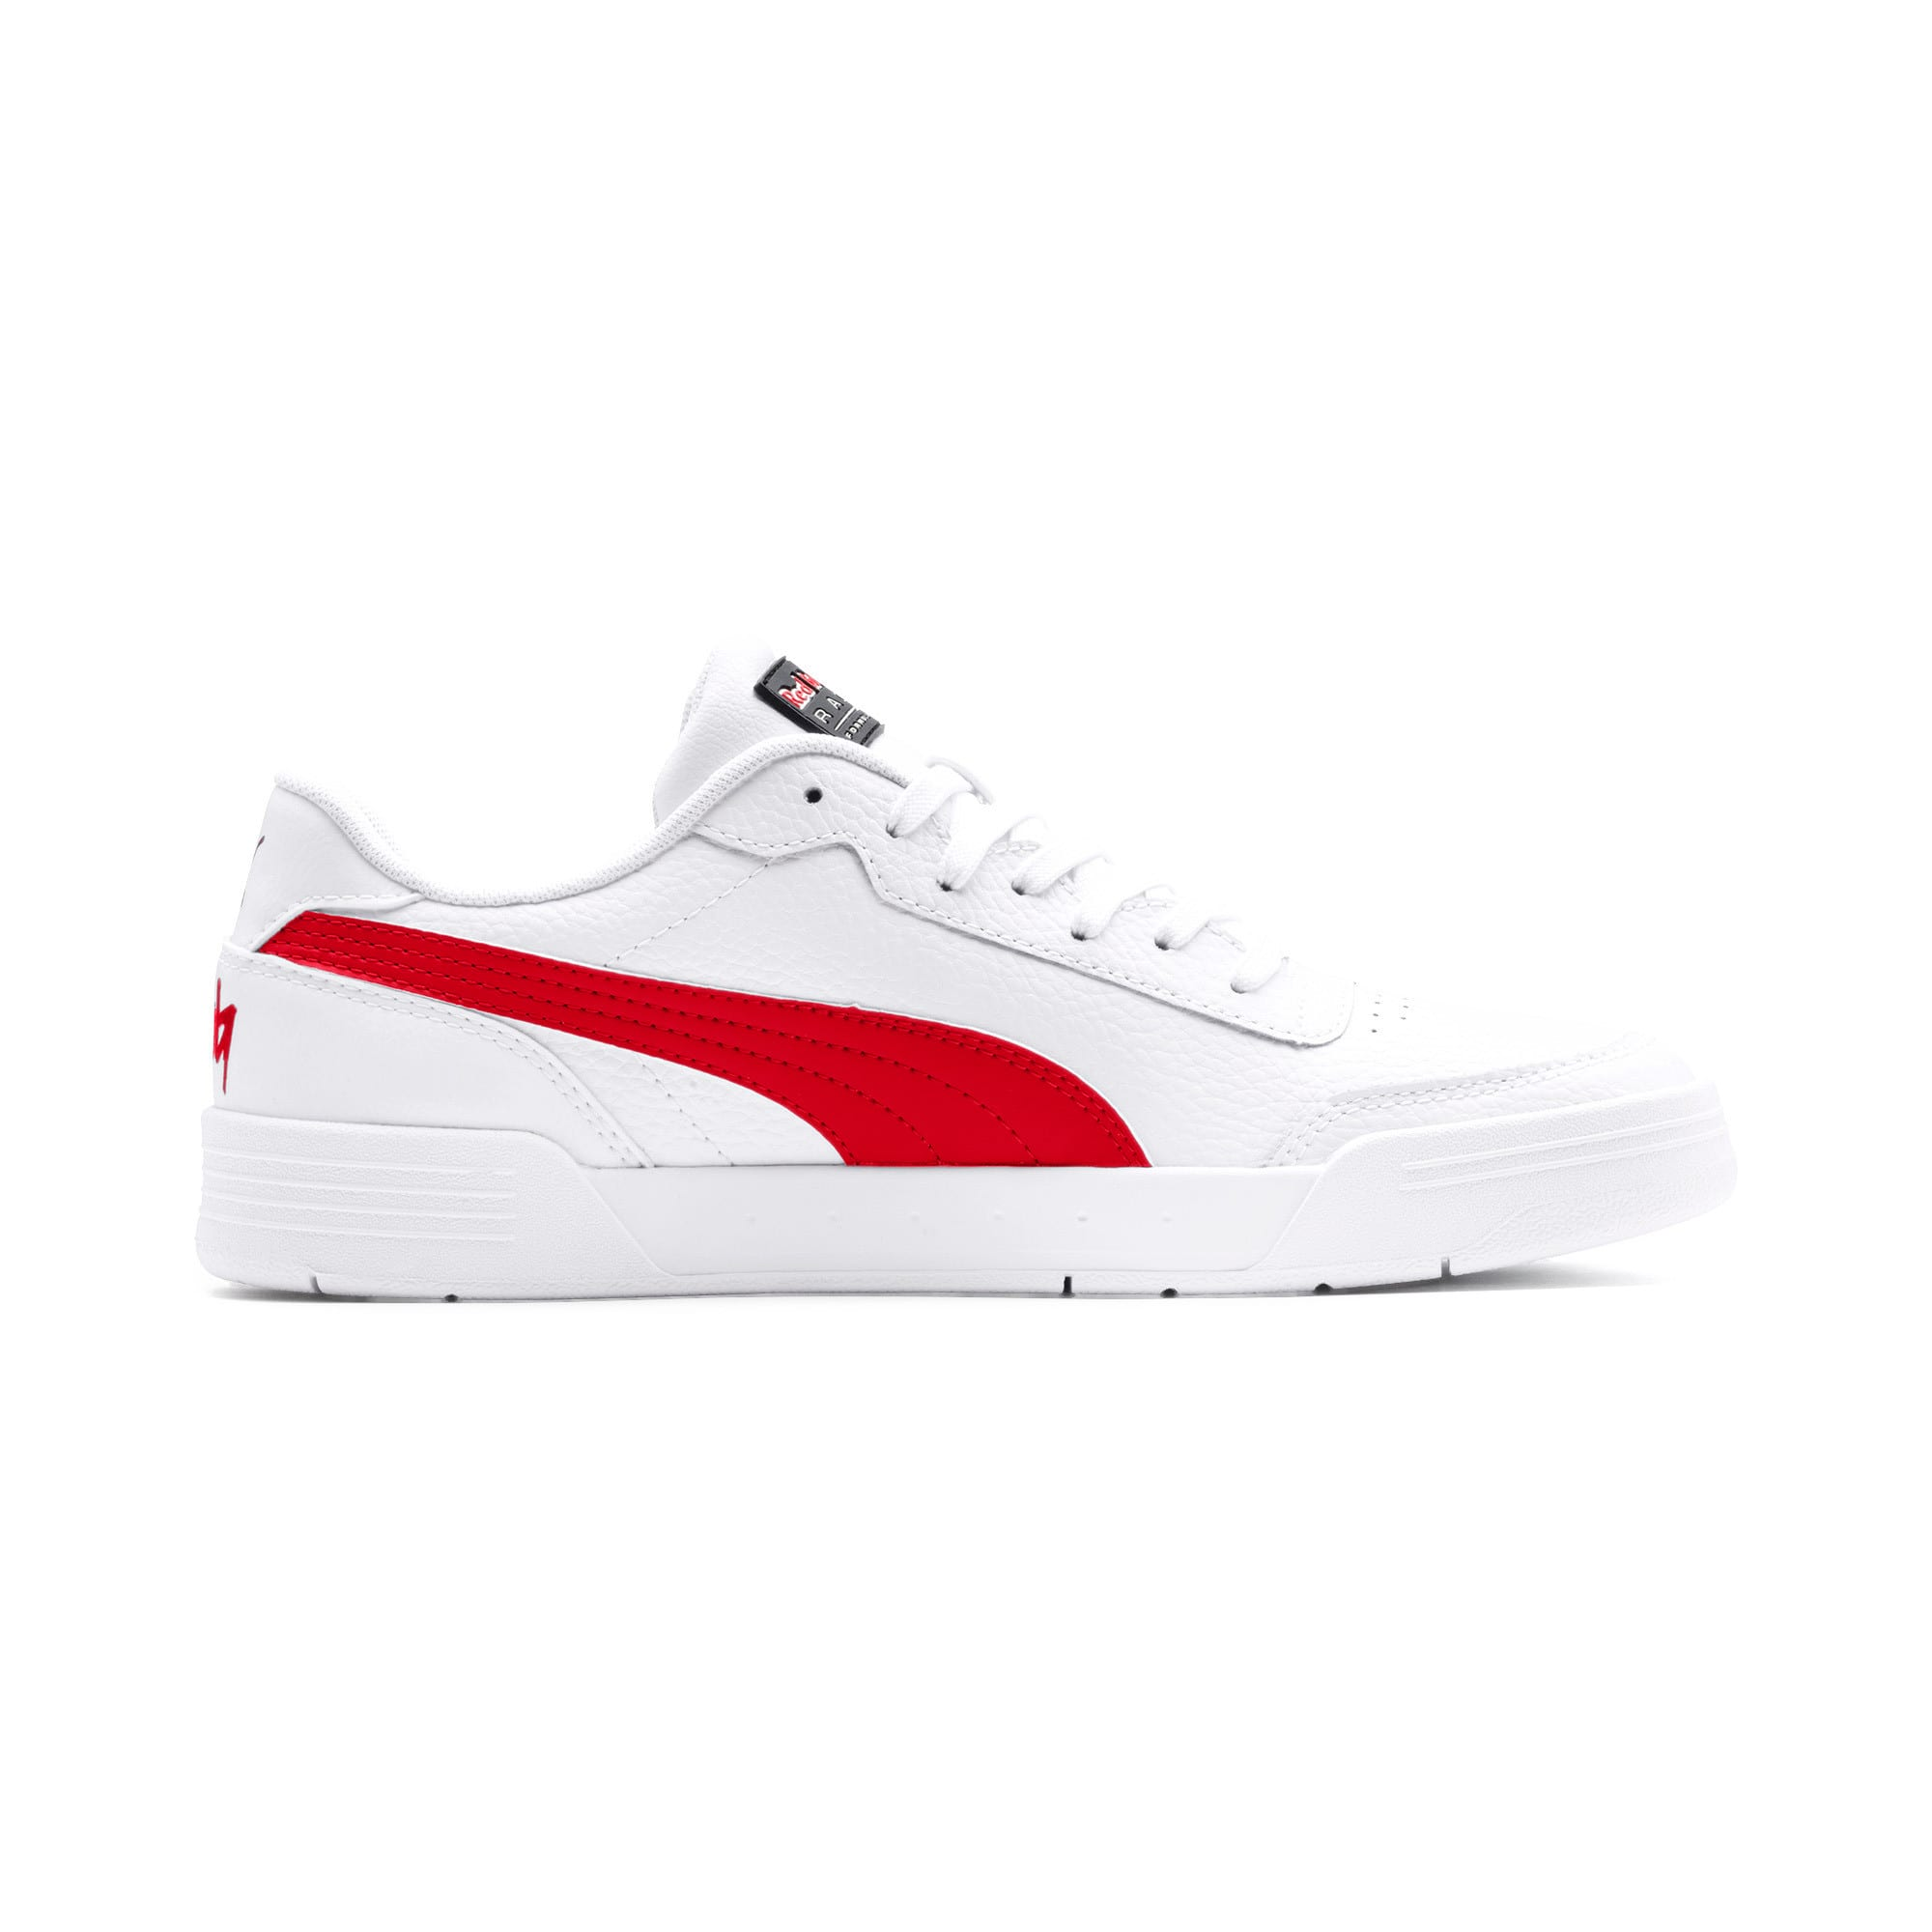 Thumbnail 6 of Red Bull Racing Caracal Trainers, Puma White-Chinese Red-White, medium